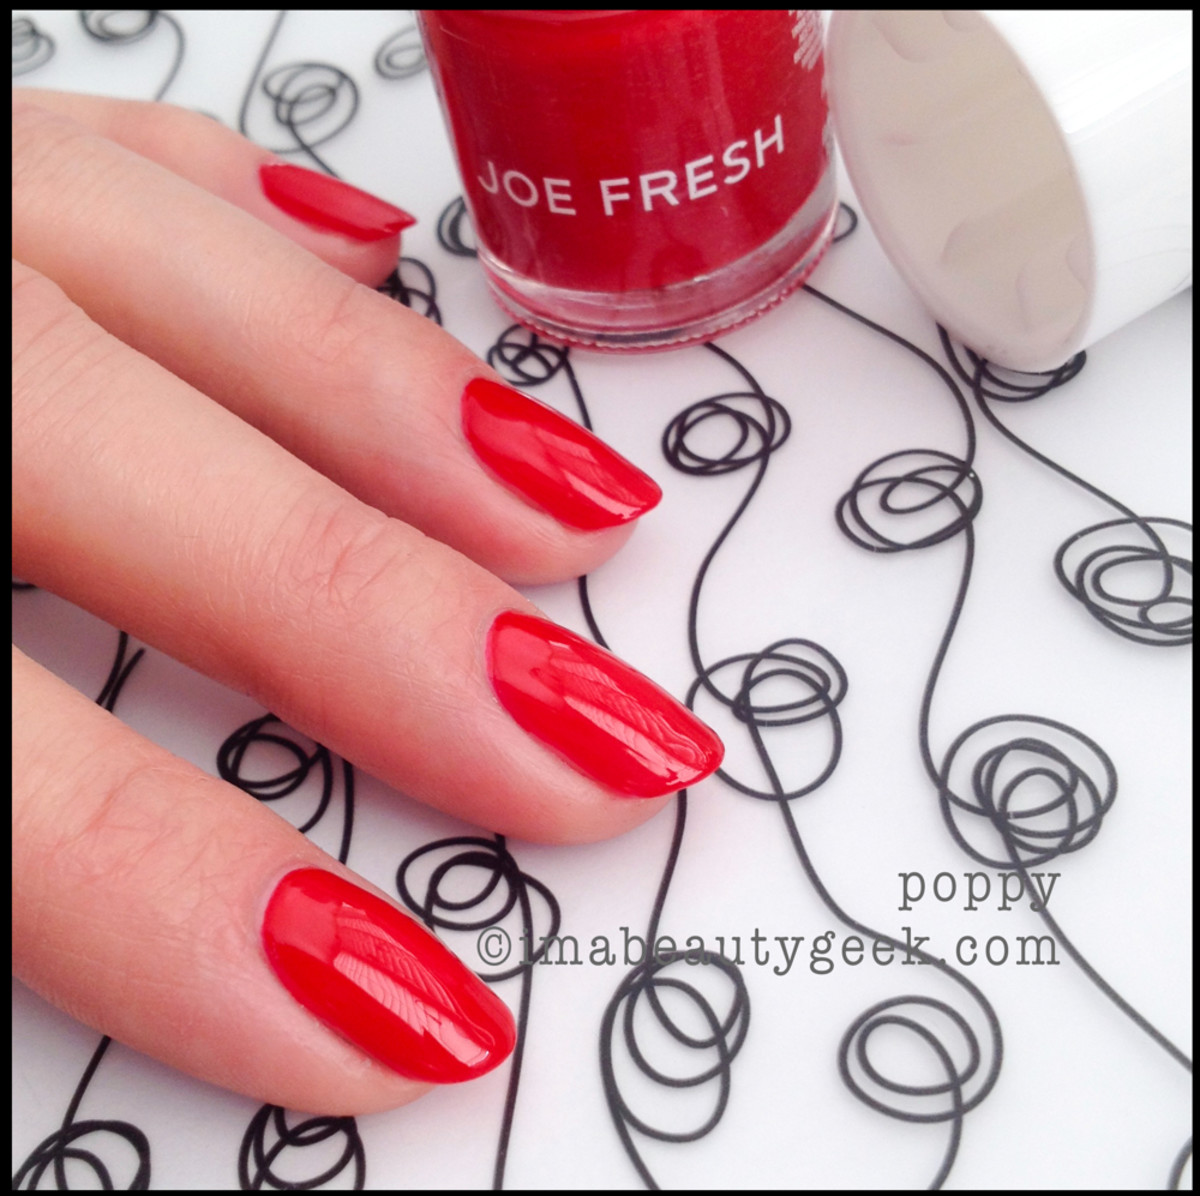 Joe Fresh Polish Poppy